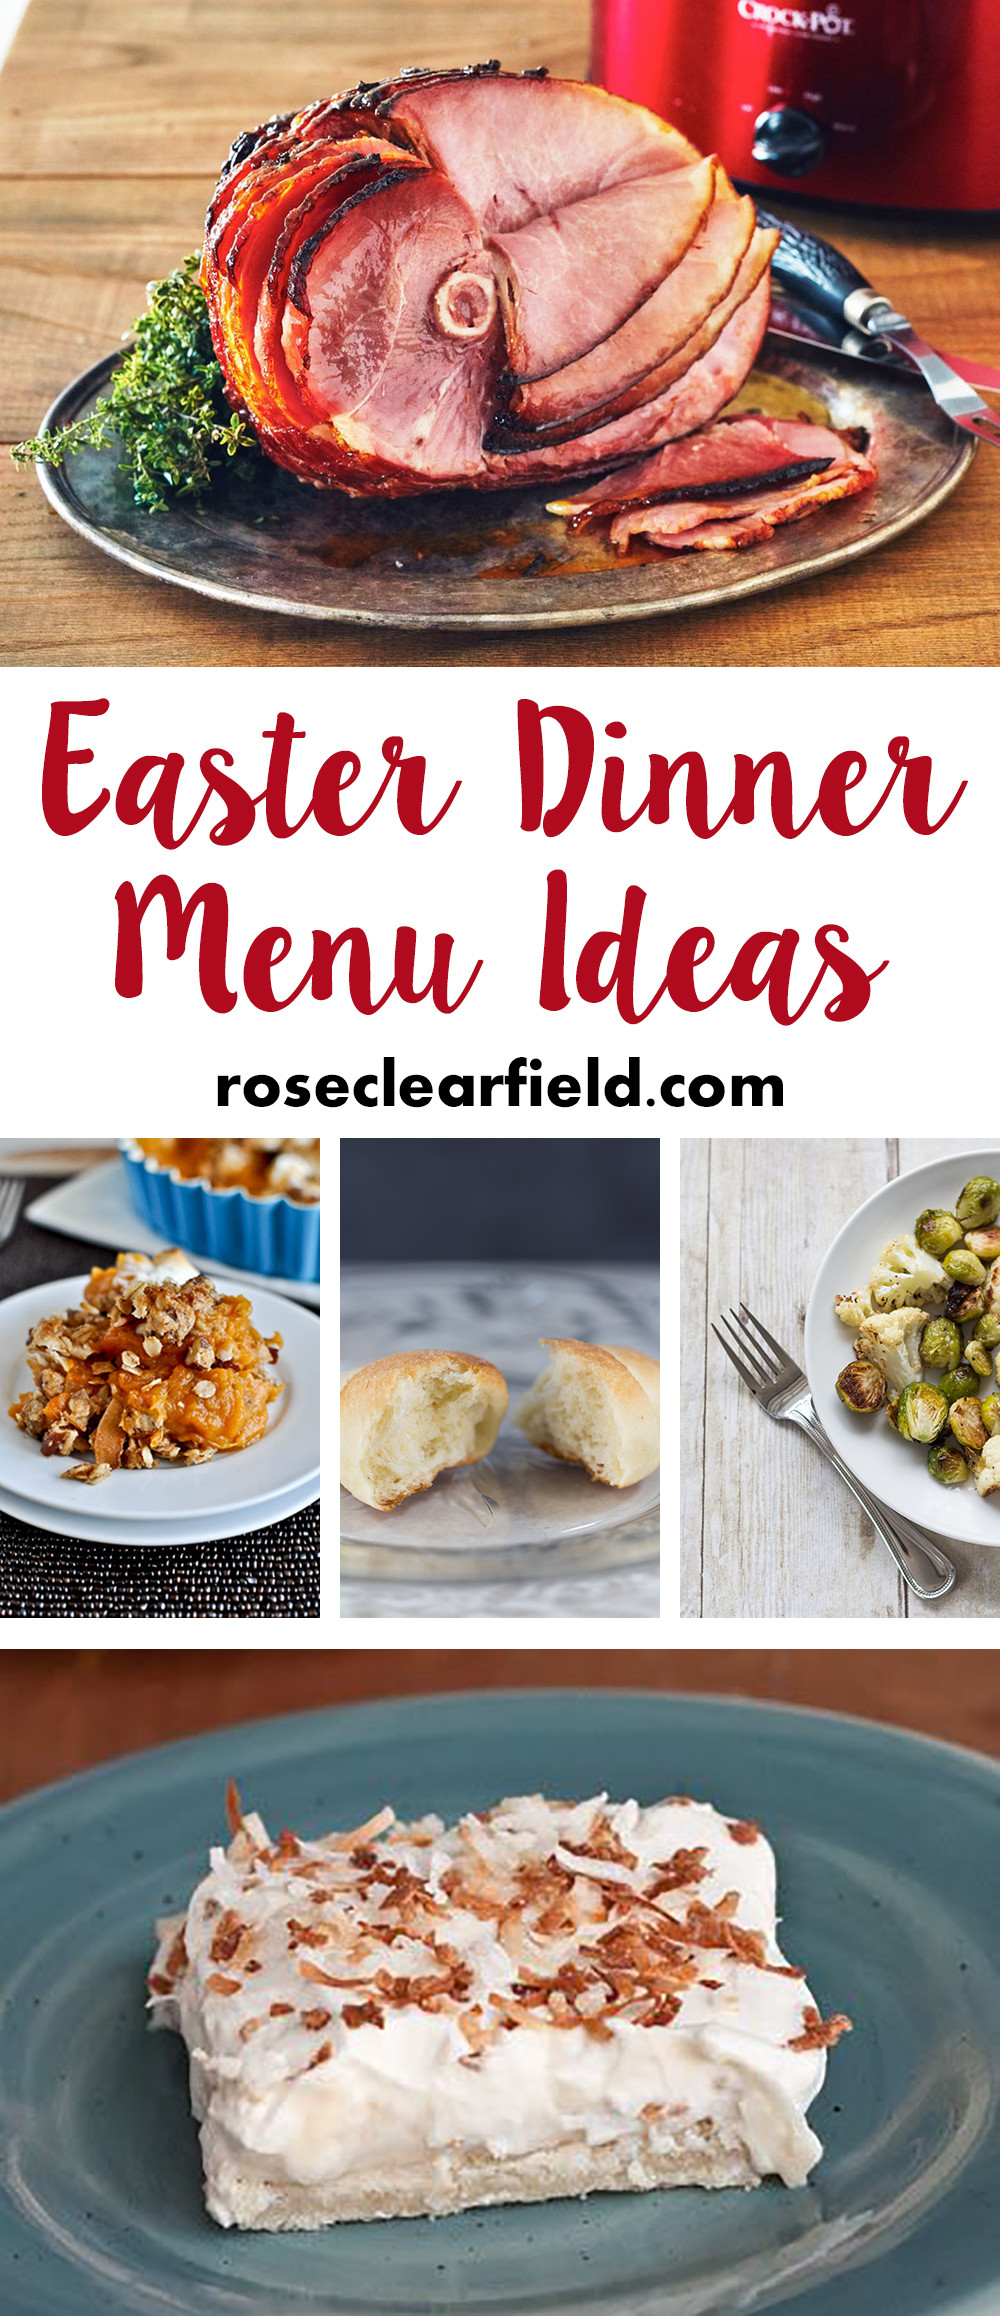 Easter Dinner Menu Ideas  Easter Dinner Menu Ideas • Rose Clearfield